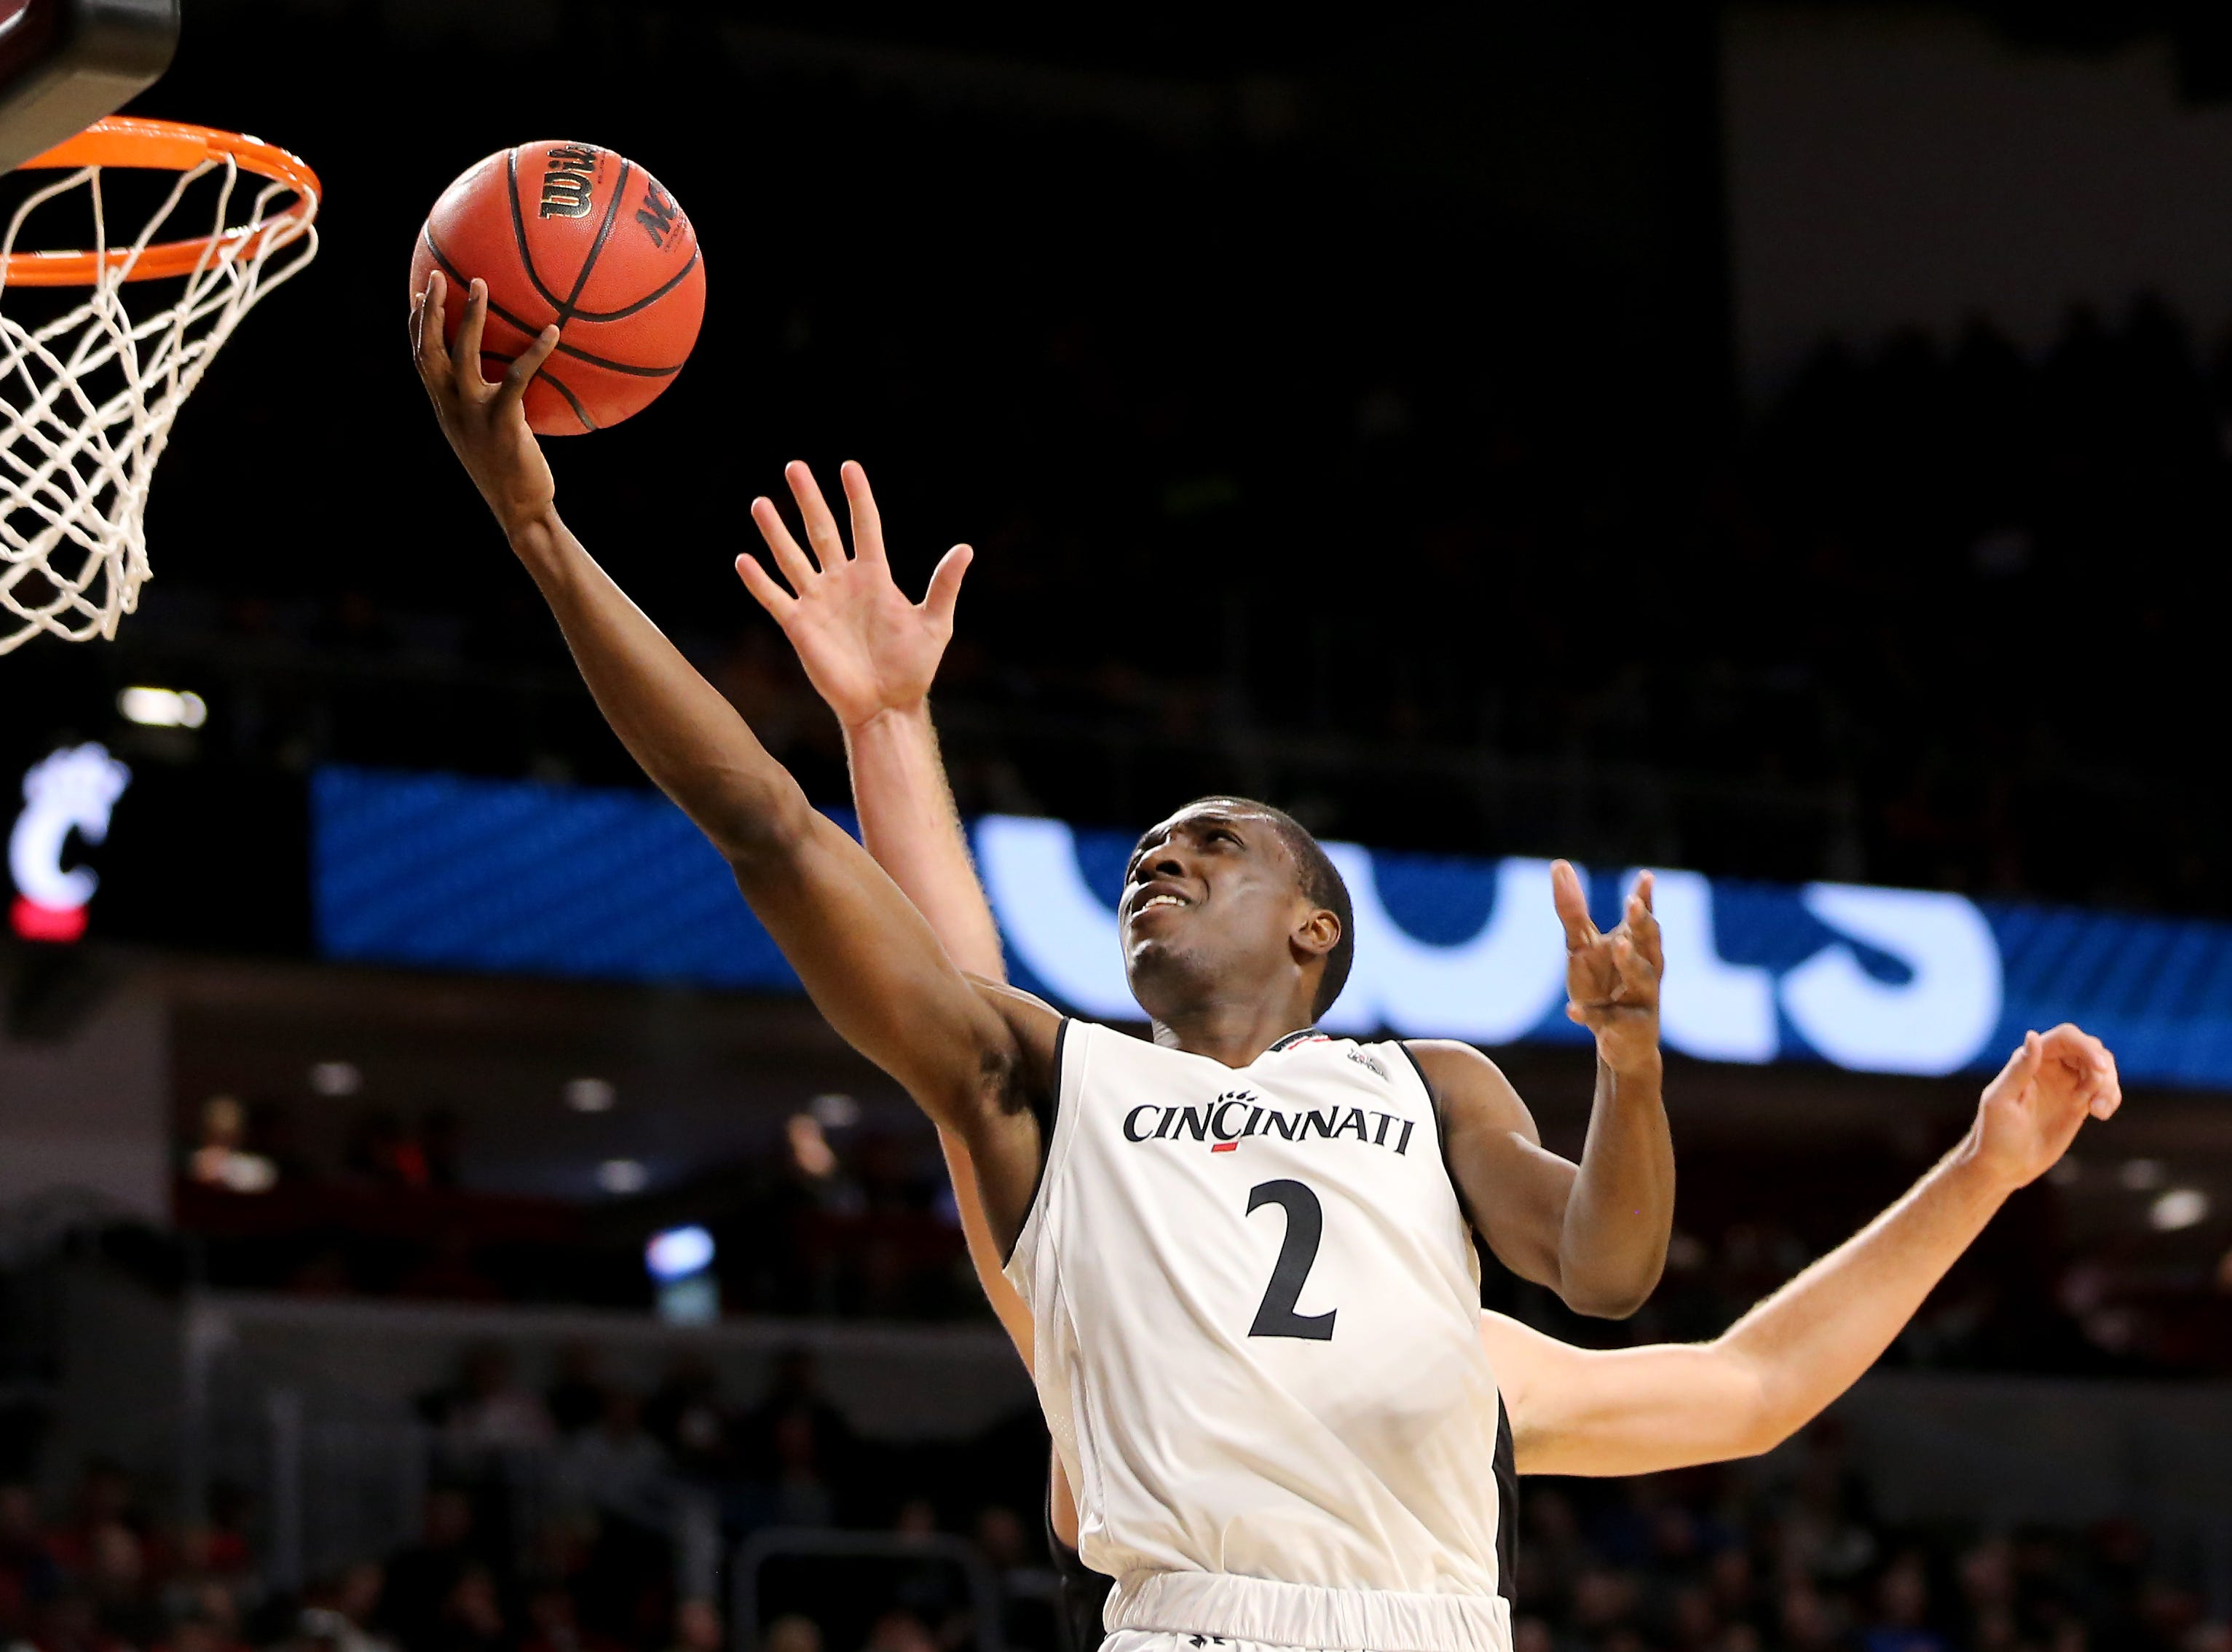 Cincinnati Bearcats guard Keith Williams (2) goes up for a shot in the second half of an NCAA college basketball game against the Northern Kentucky Norse, Tuesday, Dec. 4, 2018, at Fifth Third Arena in Cincinnati.